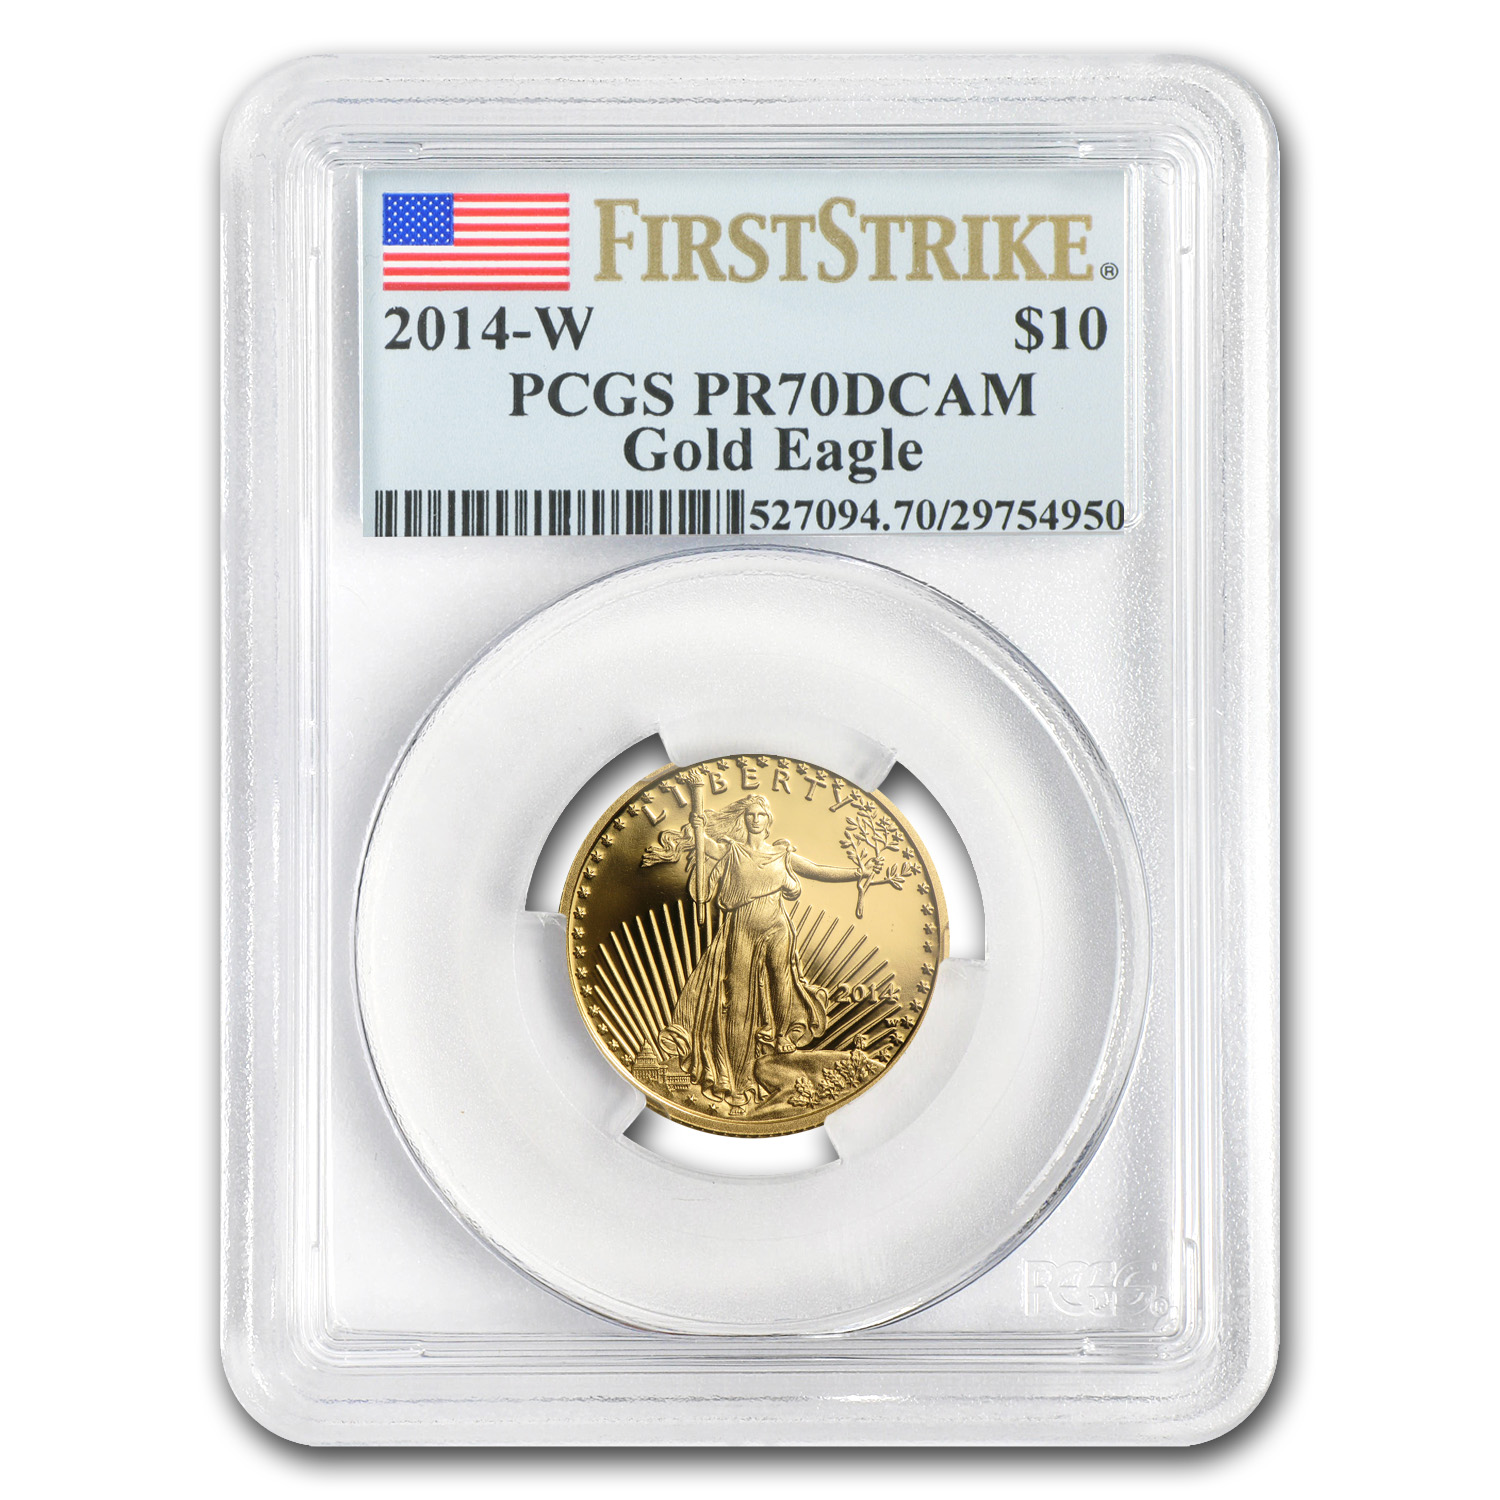 2014-W 1/4 oz Proof Gold American Eagle PR-70 PCGS - First Strike